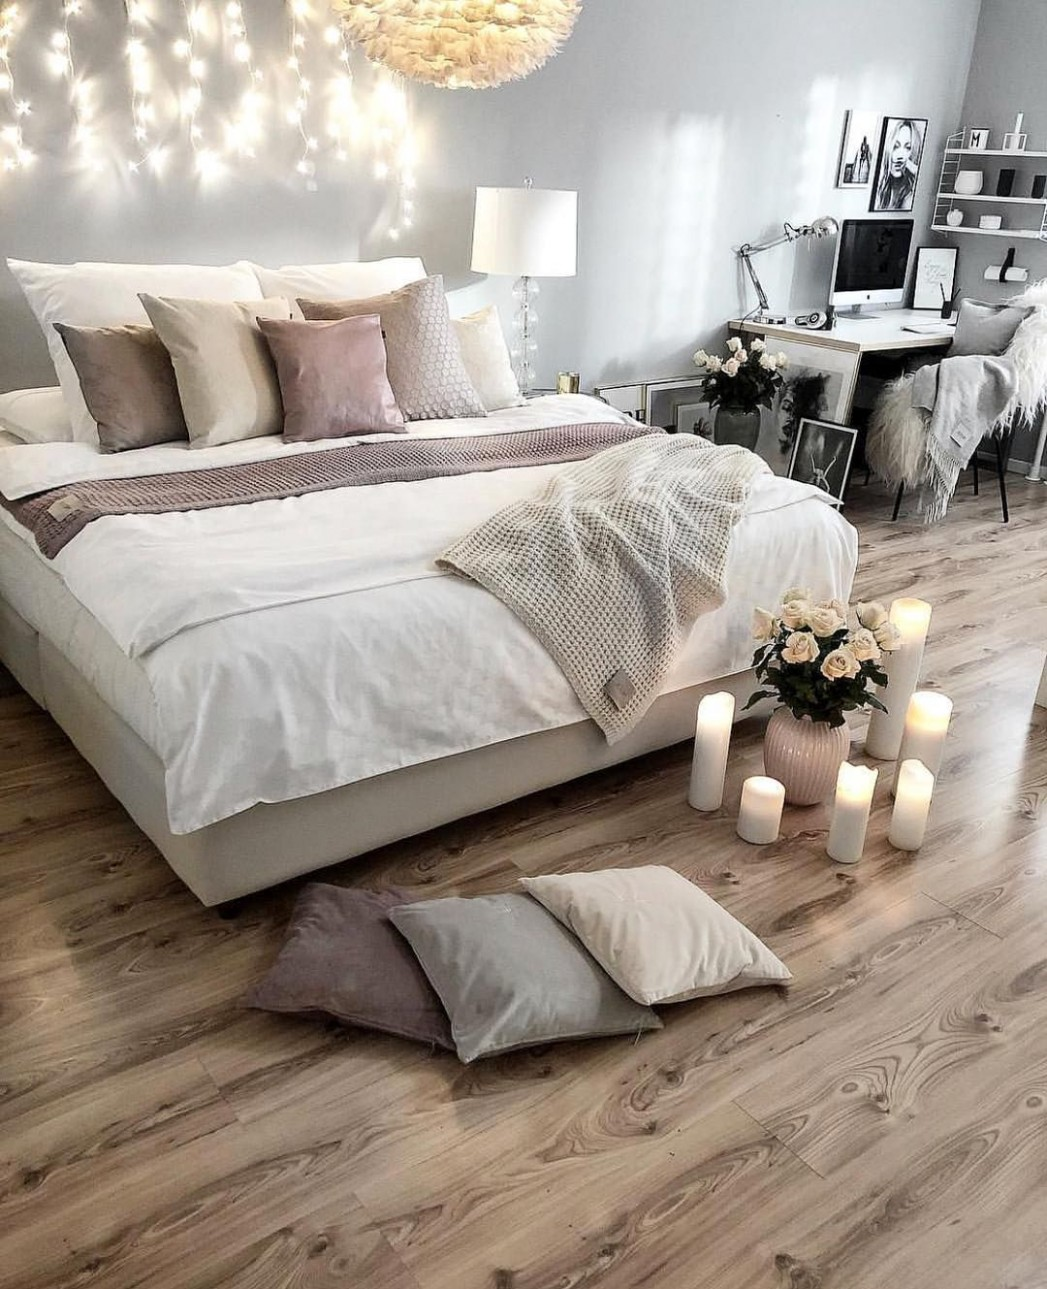 ❤️ Dreamy bedrooms on Instagram • photo © @easyinterieur  - Bedroom Ideas Instagram